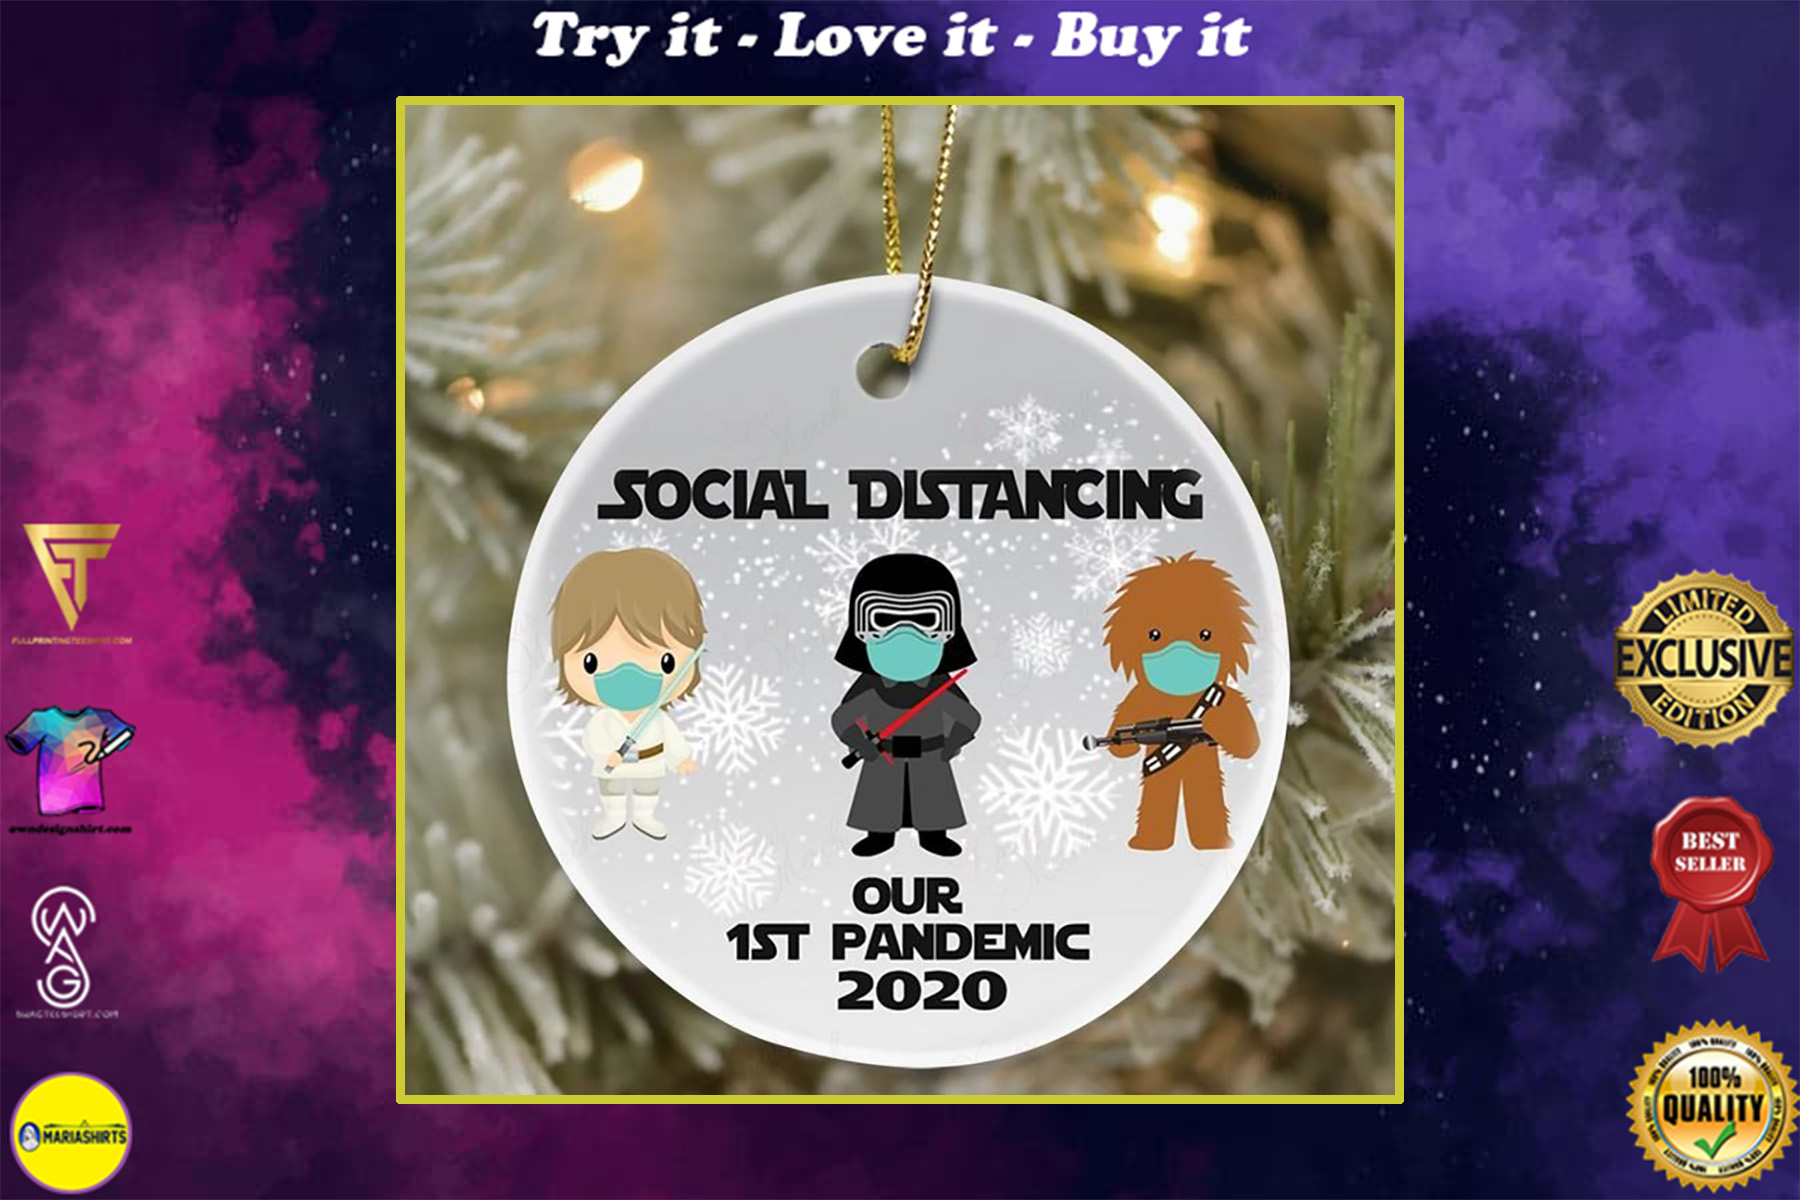 darth vader and chewbacca social distancing our 1st pandemic 2020 ornament